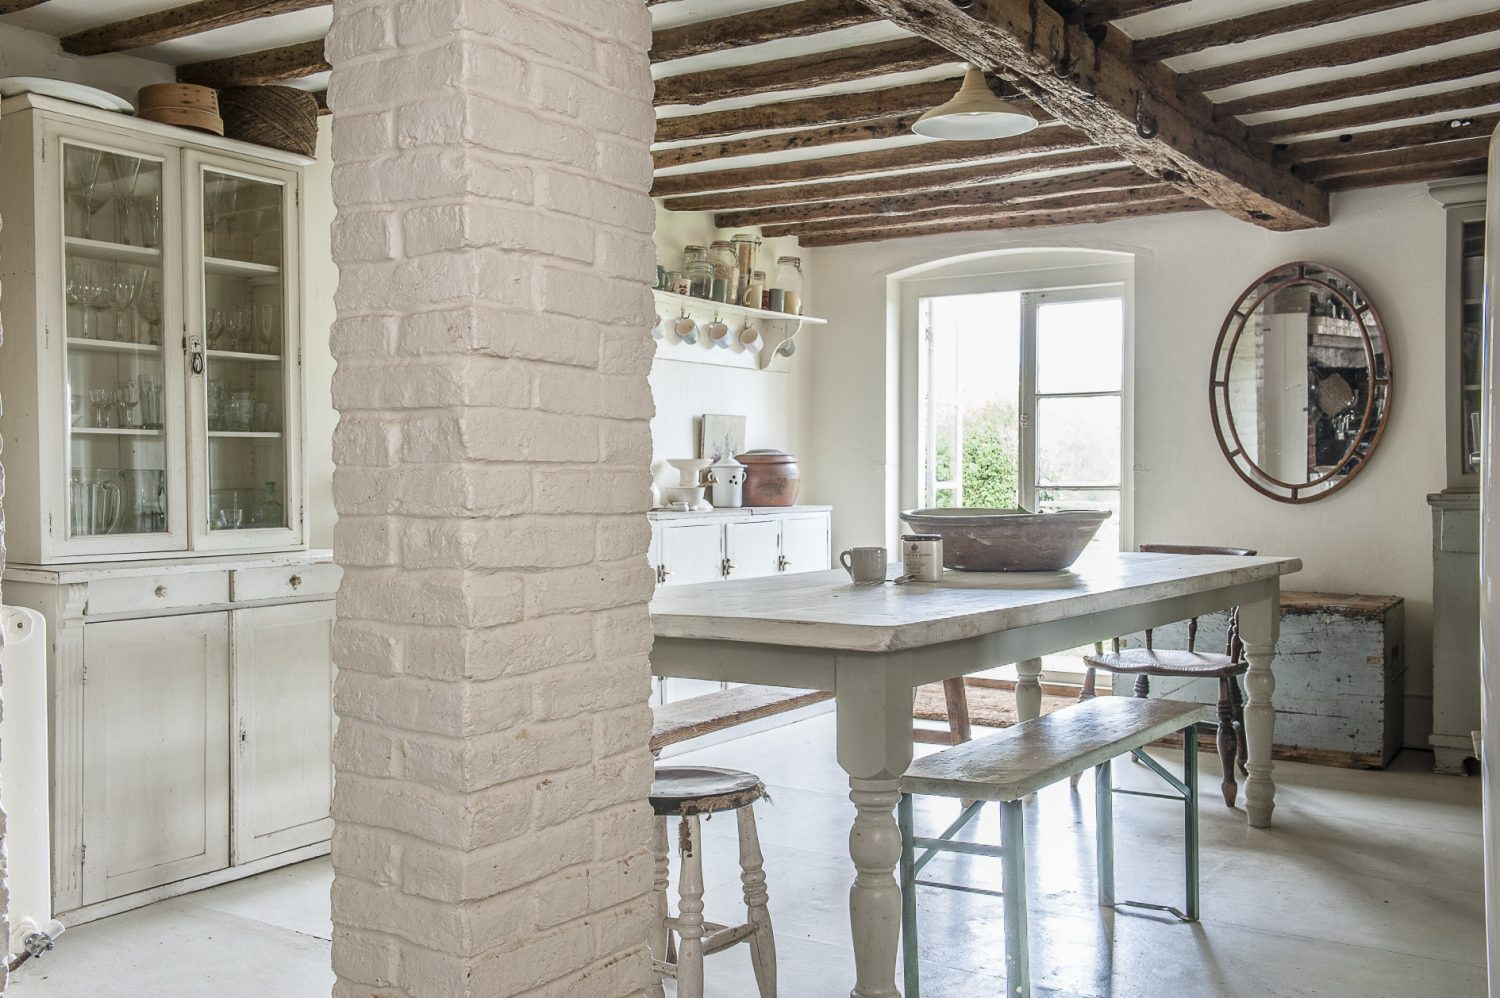 The largest single room in the house is the kitchen that runs the full width of the property. It's a glorious room of white-on-white with warmth provided by glowing timbers and bare brick